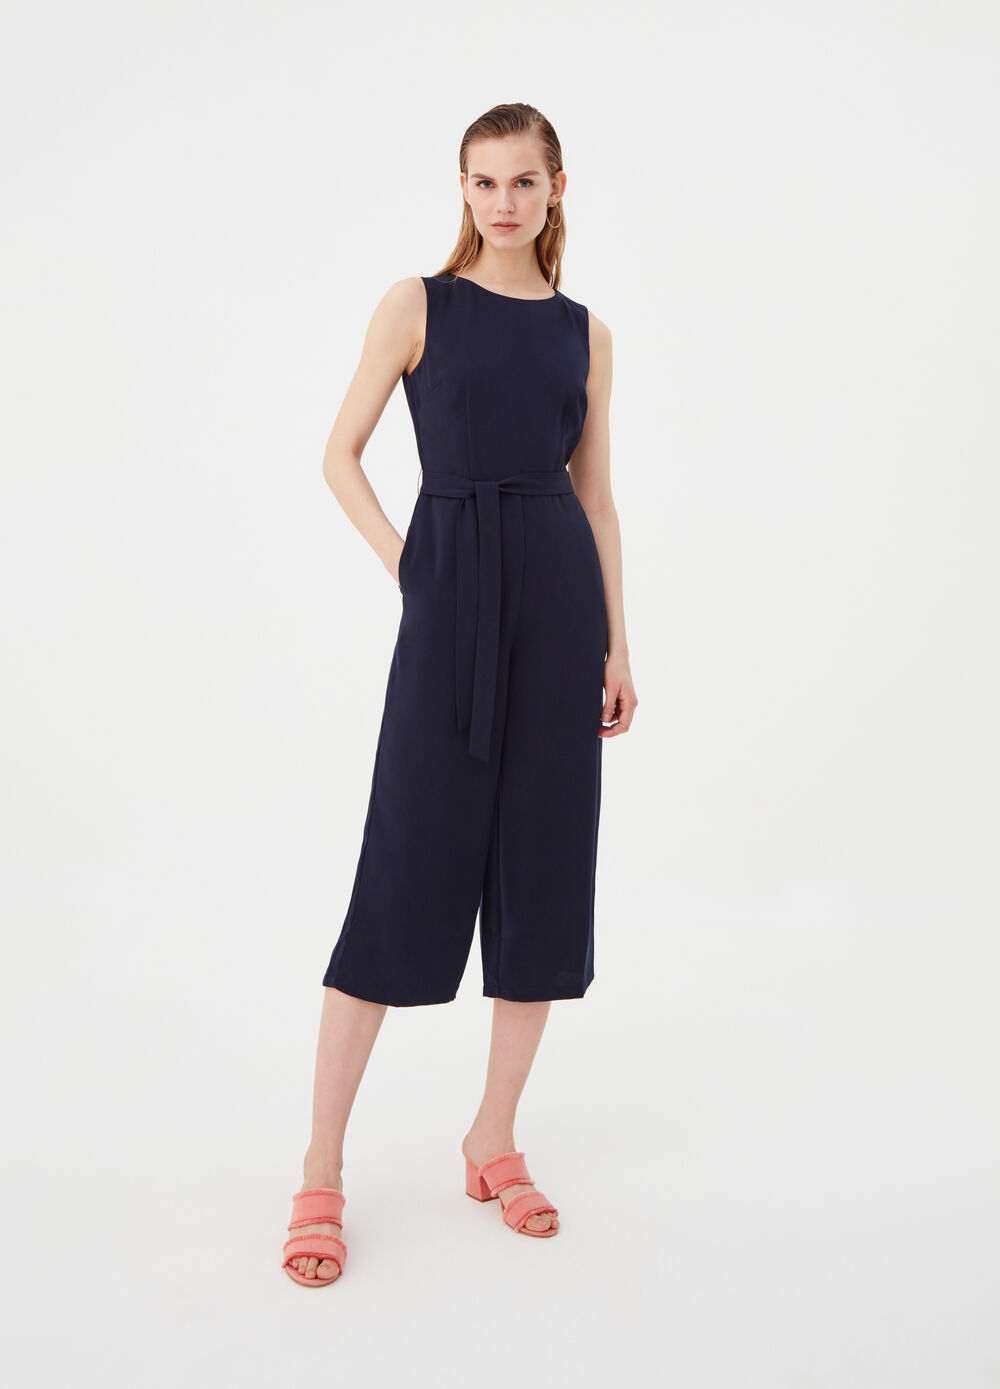 Sleeveless playsuit with belt and pockets